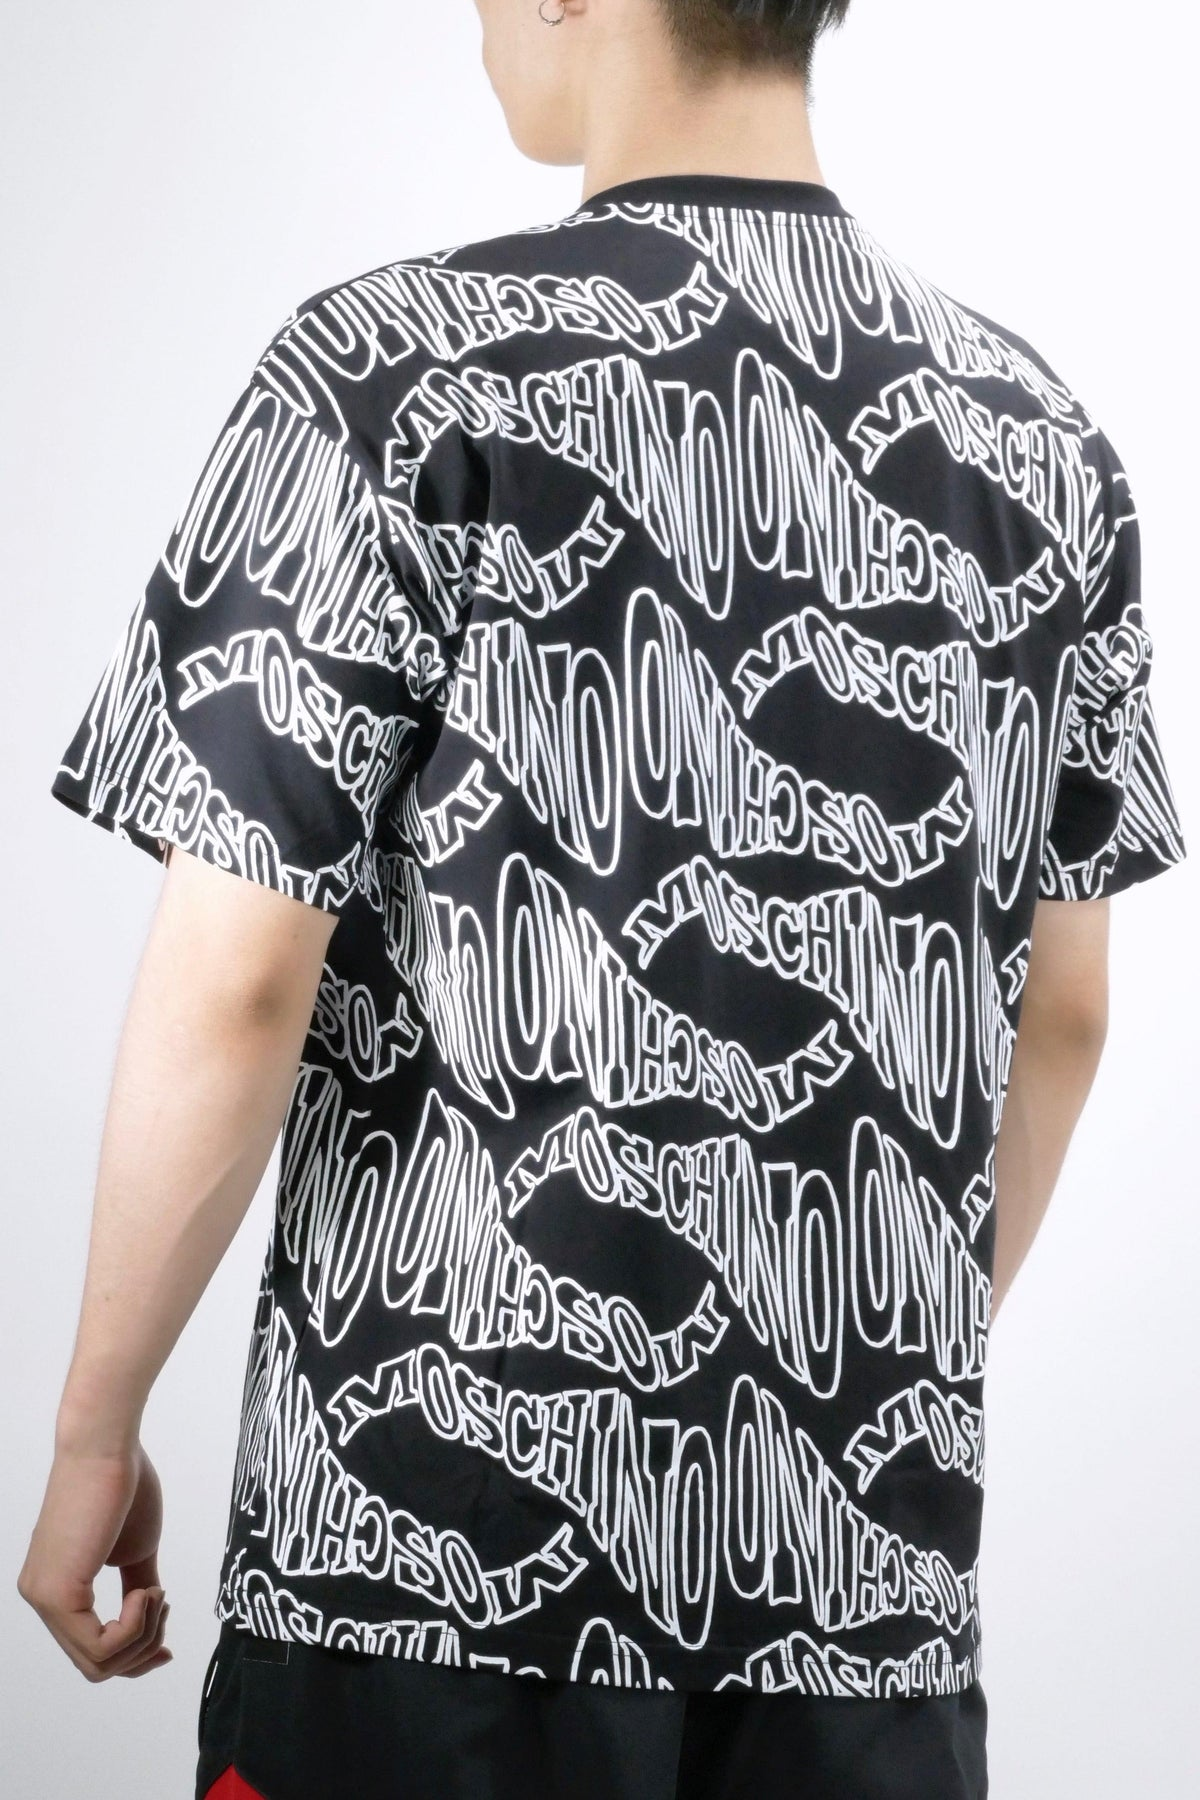 Moschino Warped Logo All Over T-Shirt Black